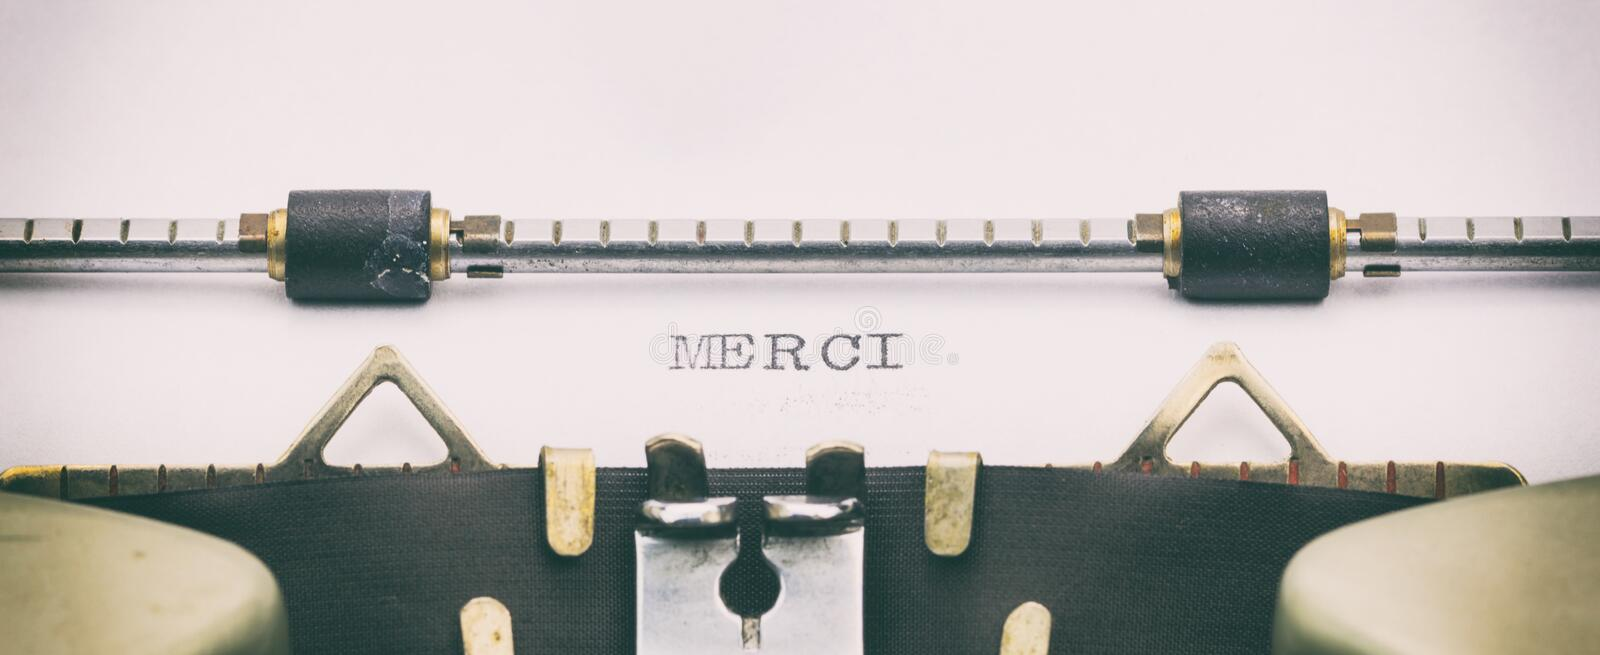 Merci word in capital letters on a typewriter sheet royalty free stock photo